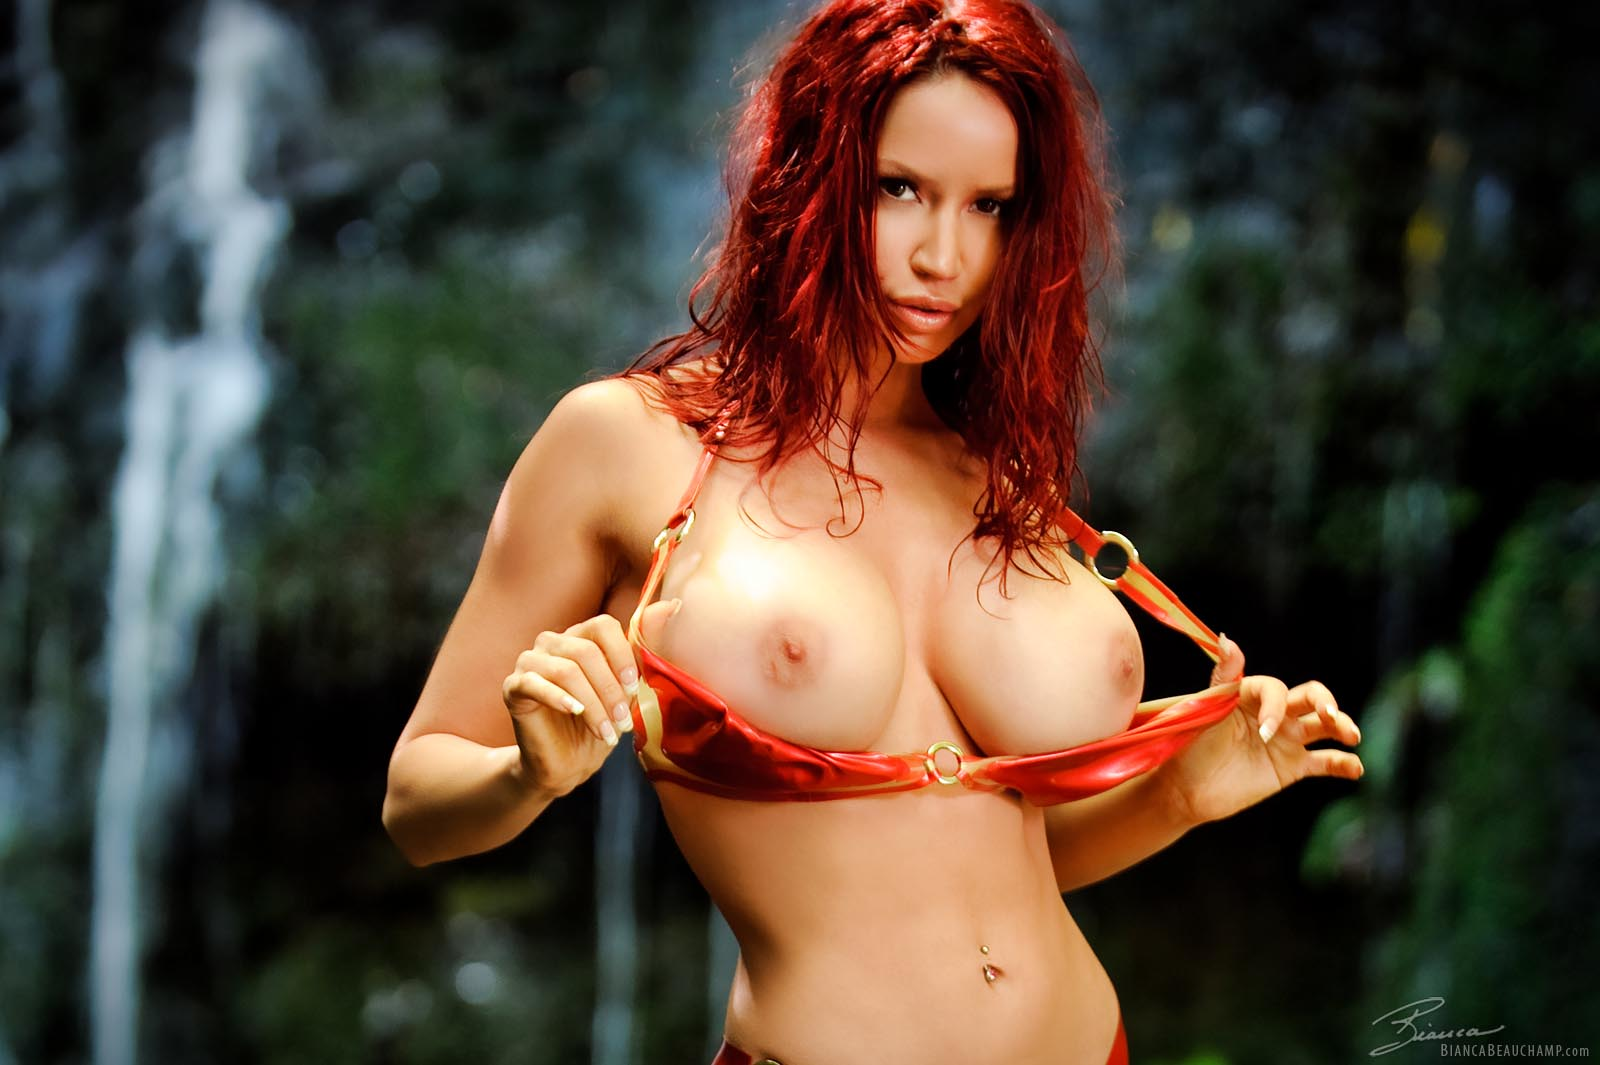 Bustybusty Really Busty Boobs Bianca Beauchamp Paradise